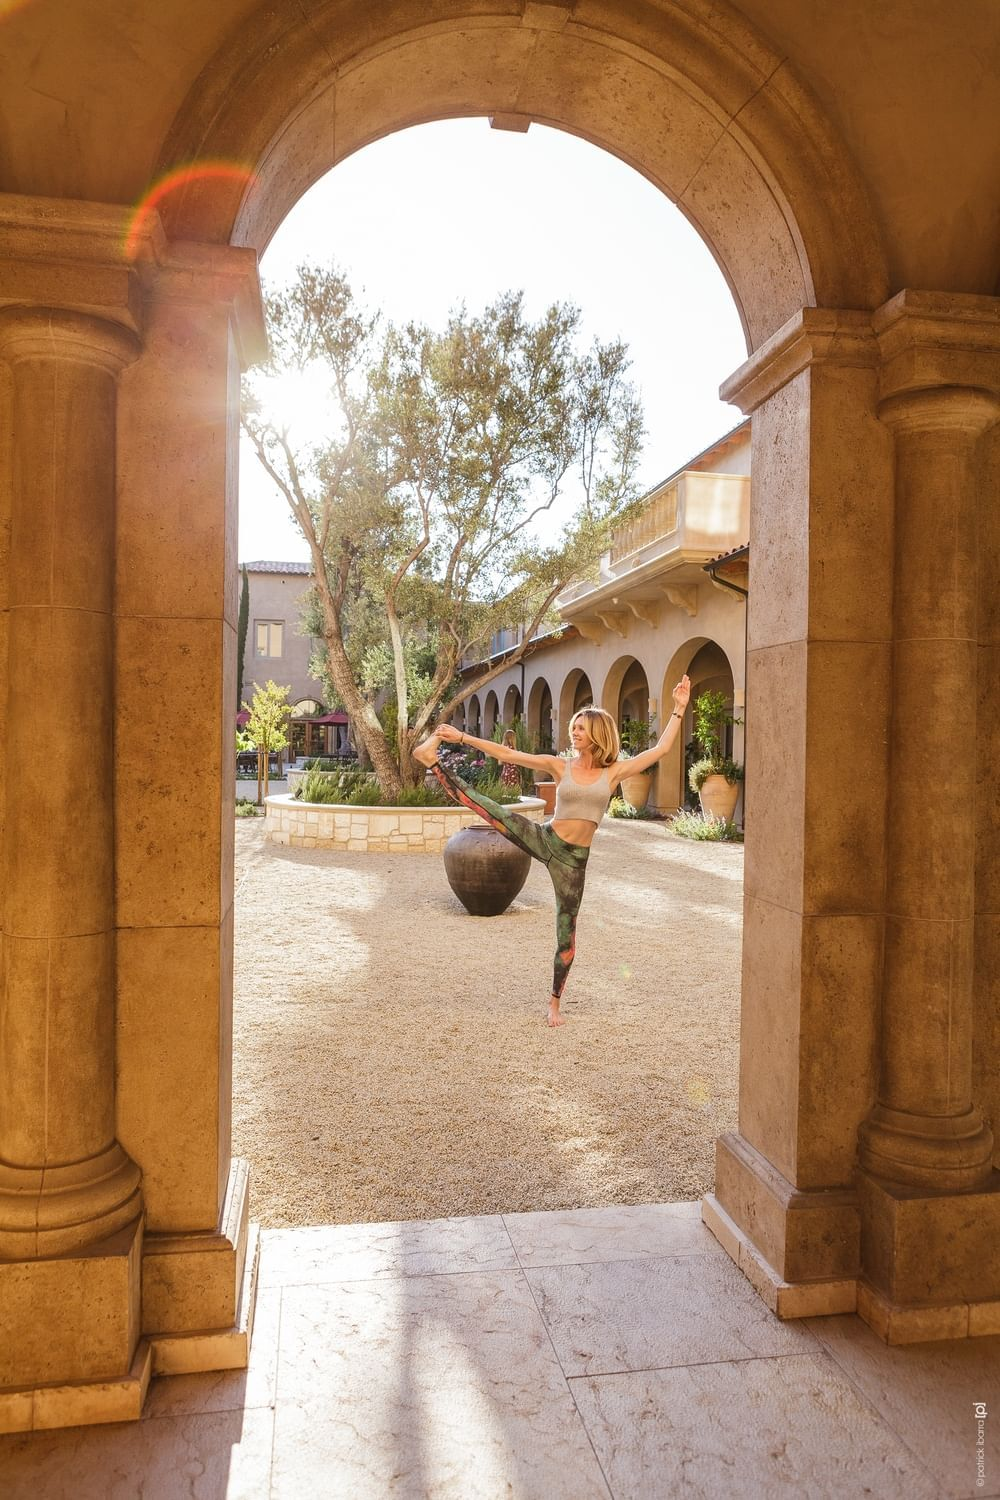 Woman holding a yoga pose in the courtyard